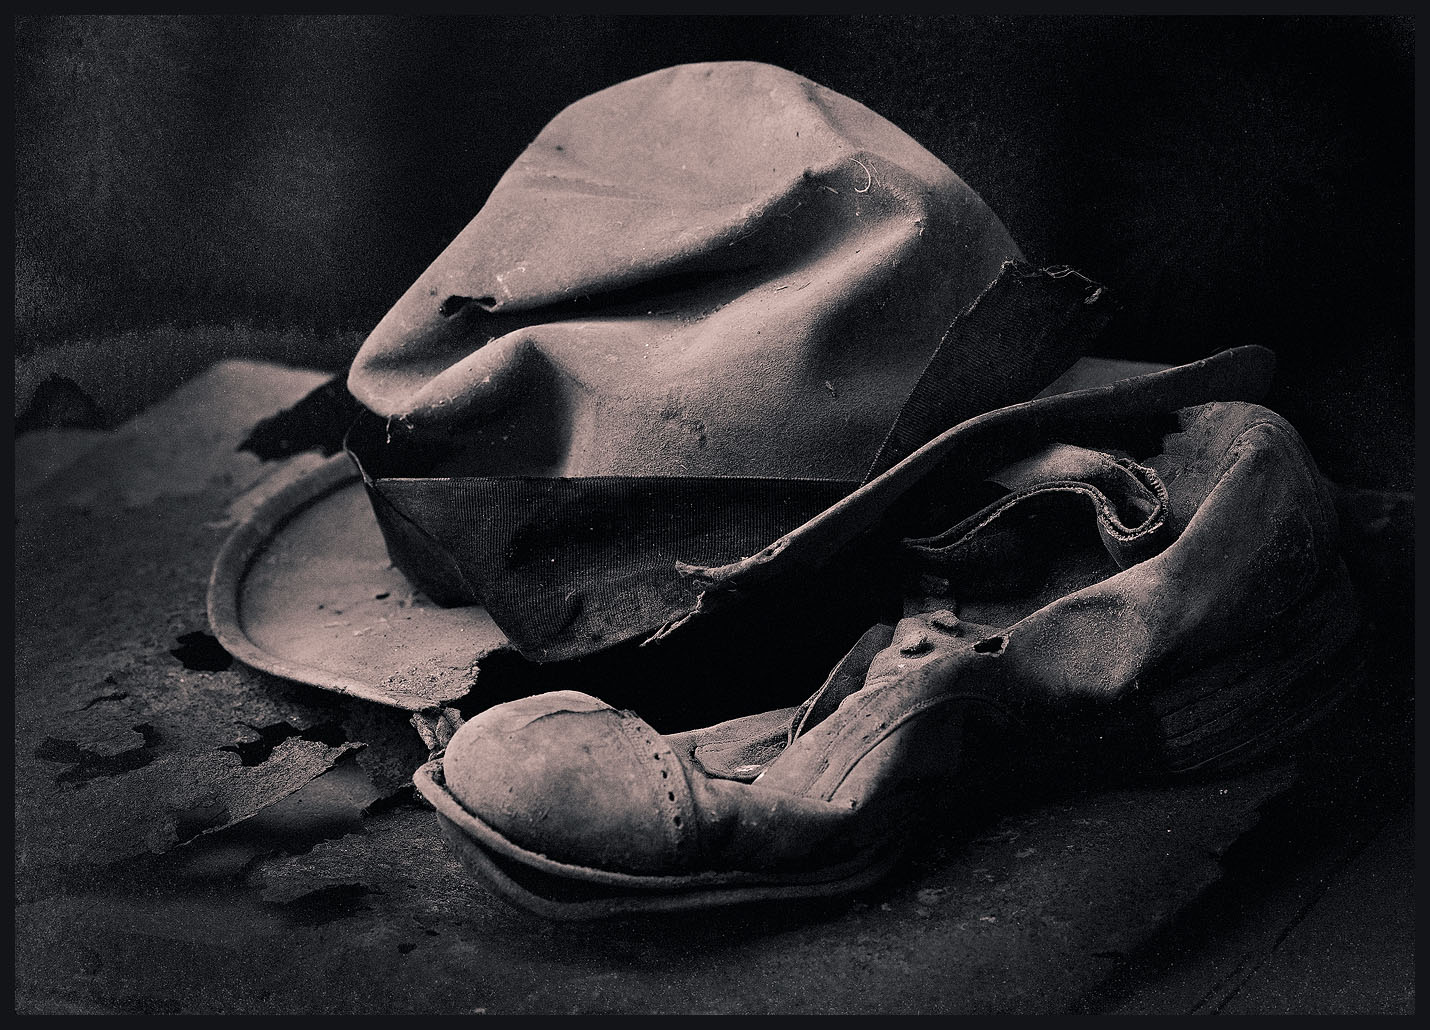 Crawlspace Trash – Shoe and Hat